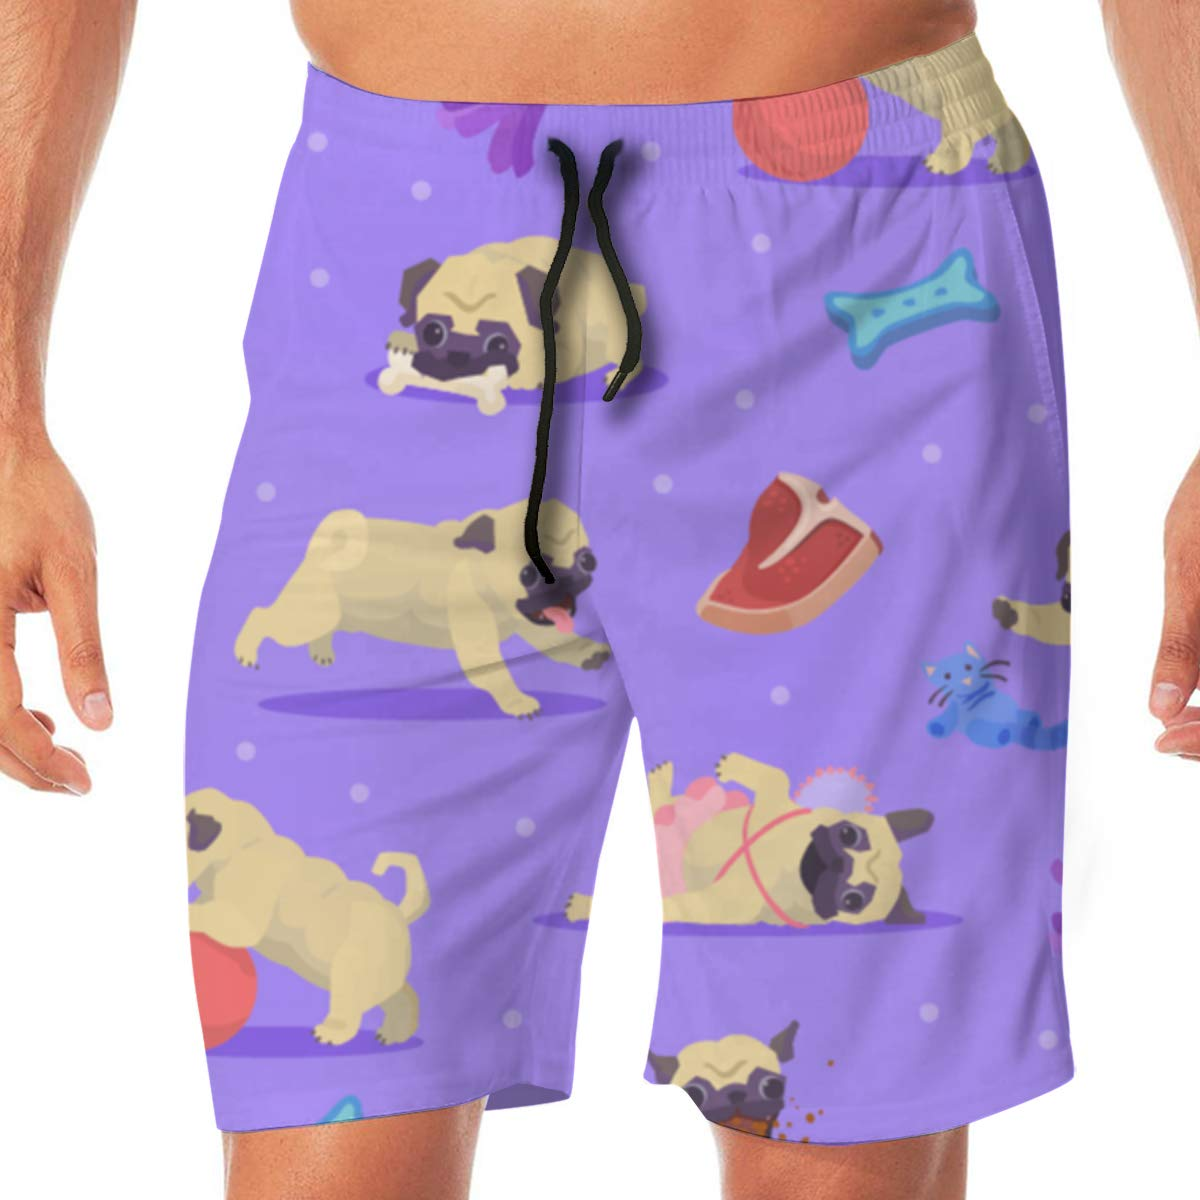 TR2YU7YT Pug Life Casual Mens Swim Trunks Quick Dry Printed Beach Shorts Summer Boardshorts Bathing Suits with Drawstring